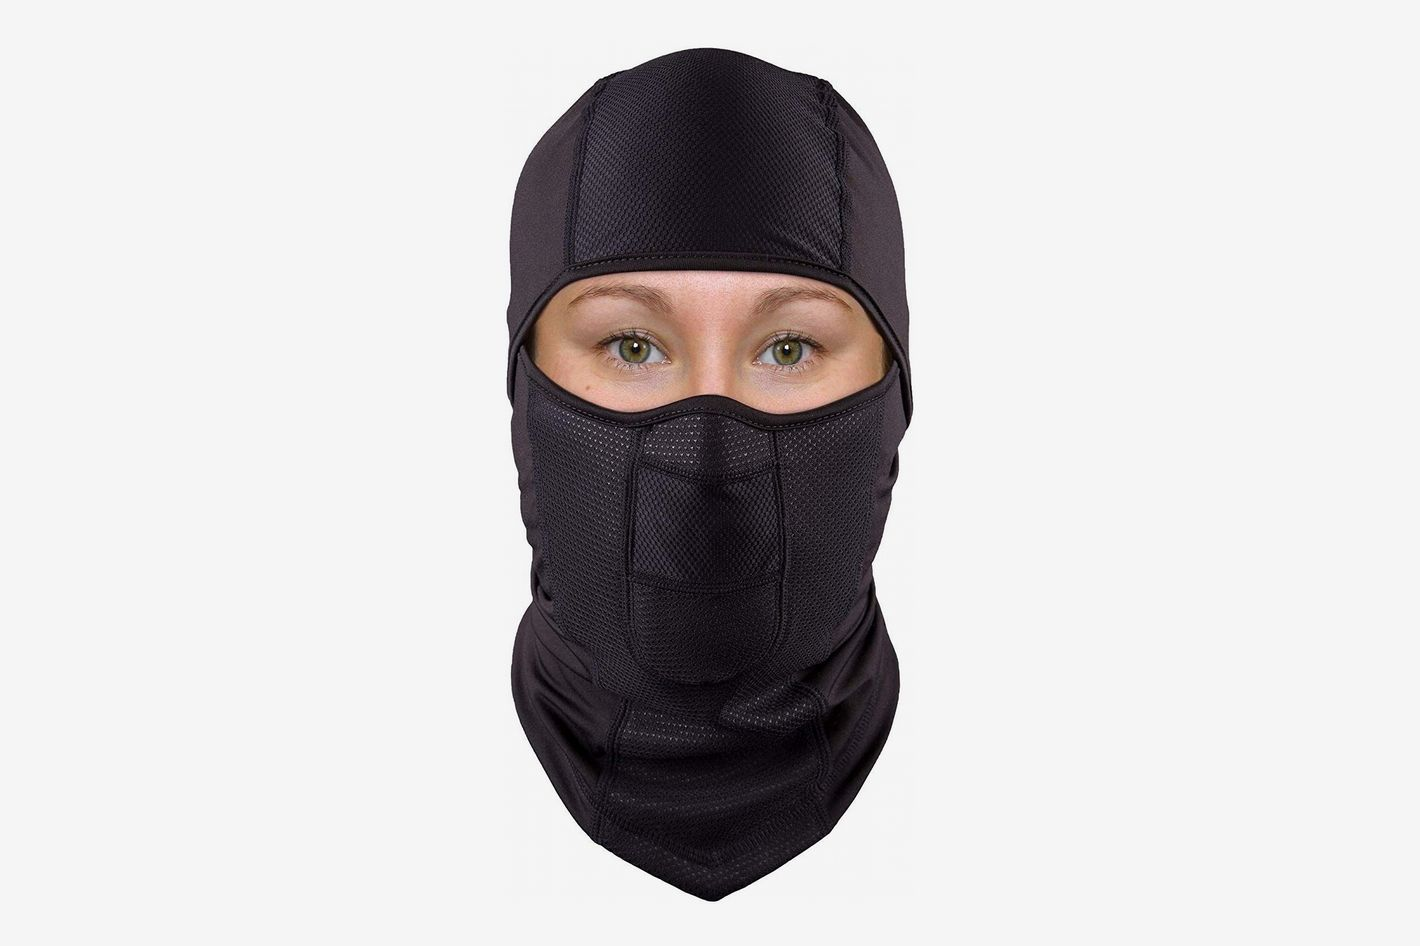 The Friendly Swede Balaclava Face Mask